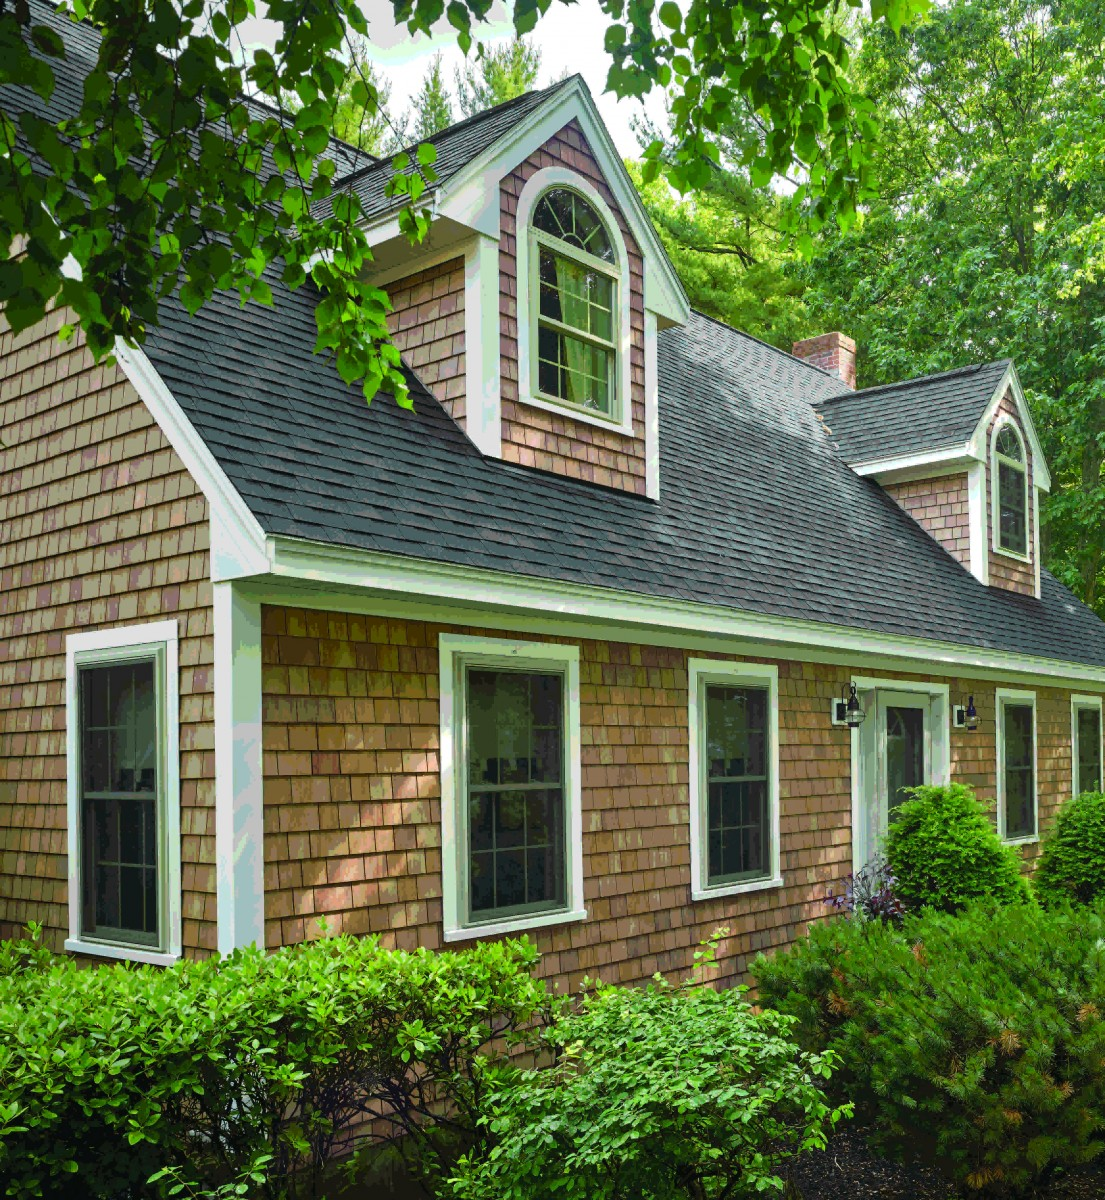 Groundbreaking Polymer Shingle Siding By Certainteed To Debut At Remodeling Show